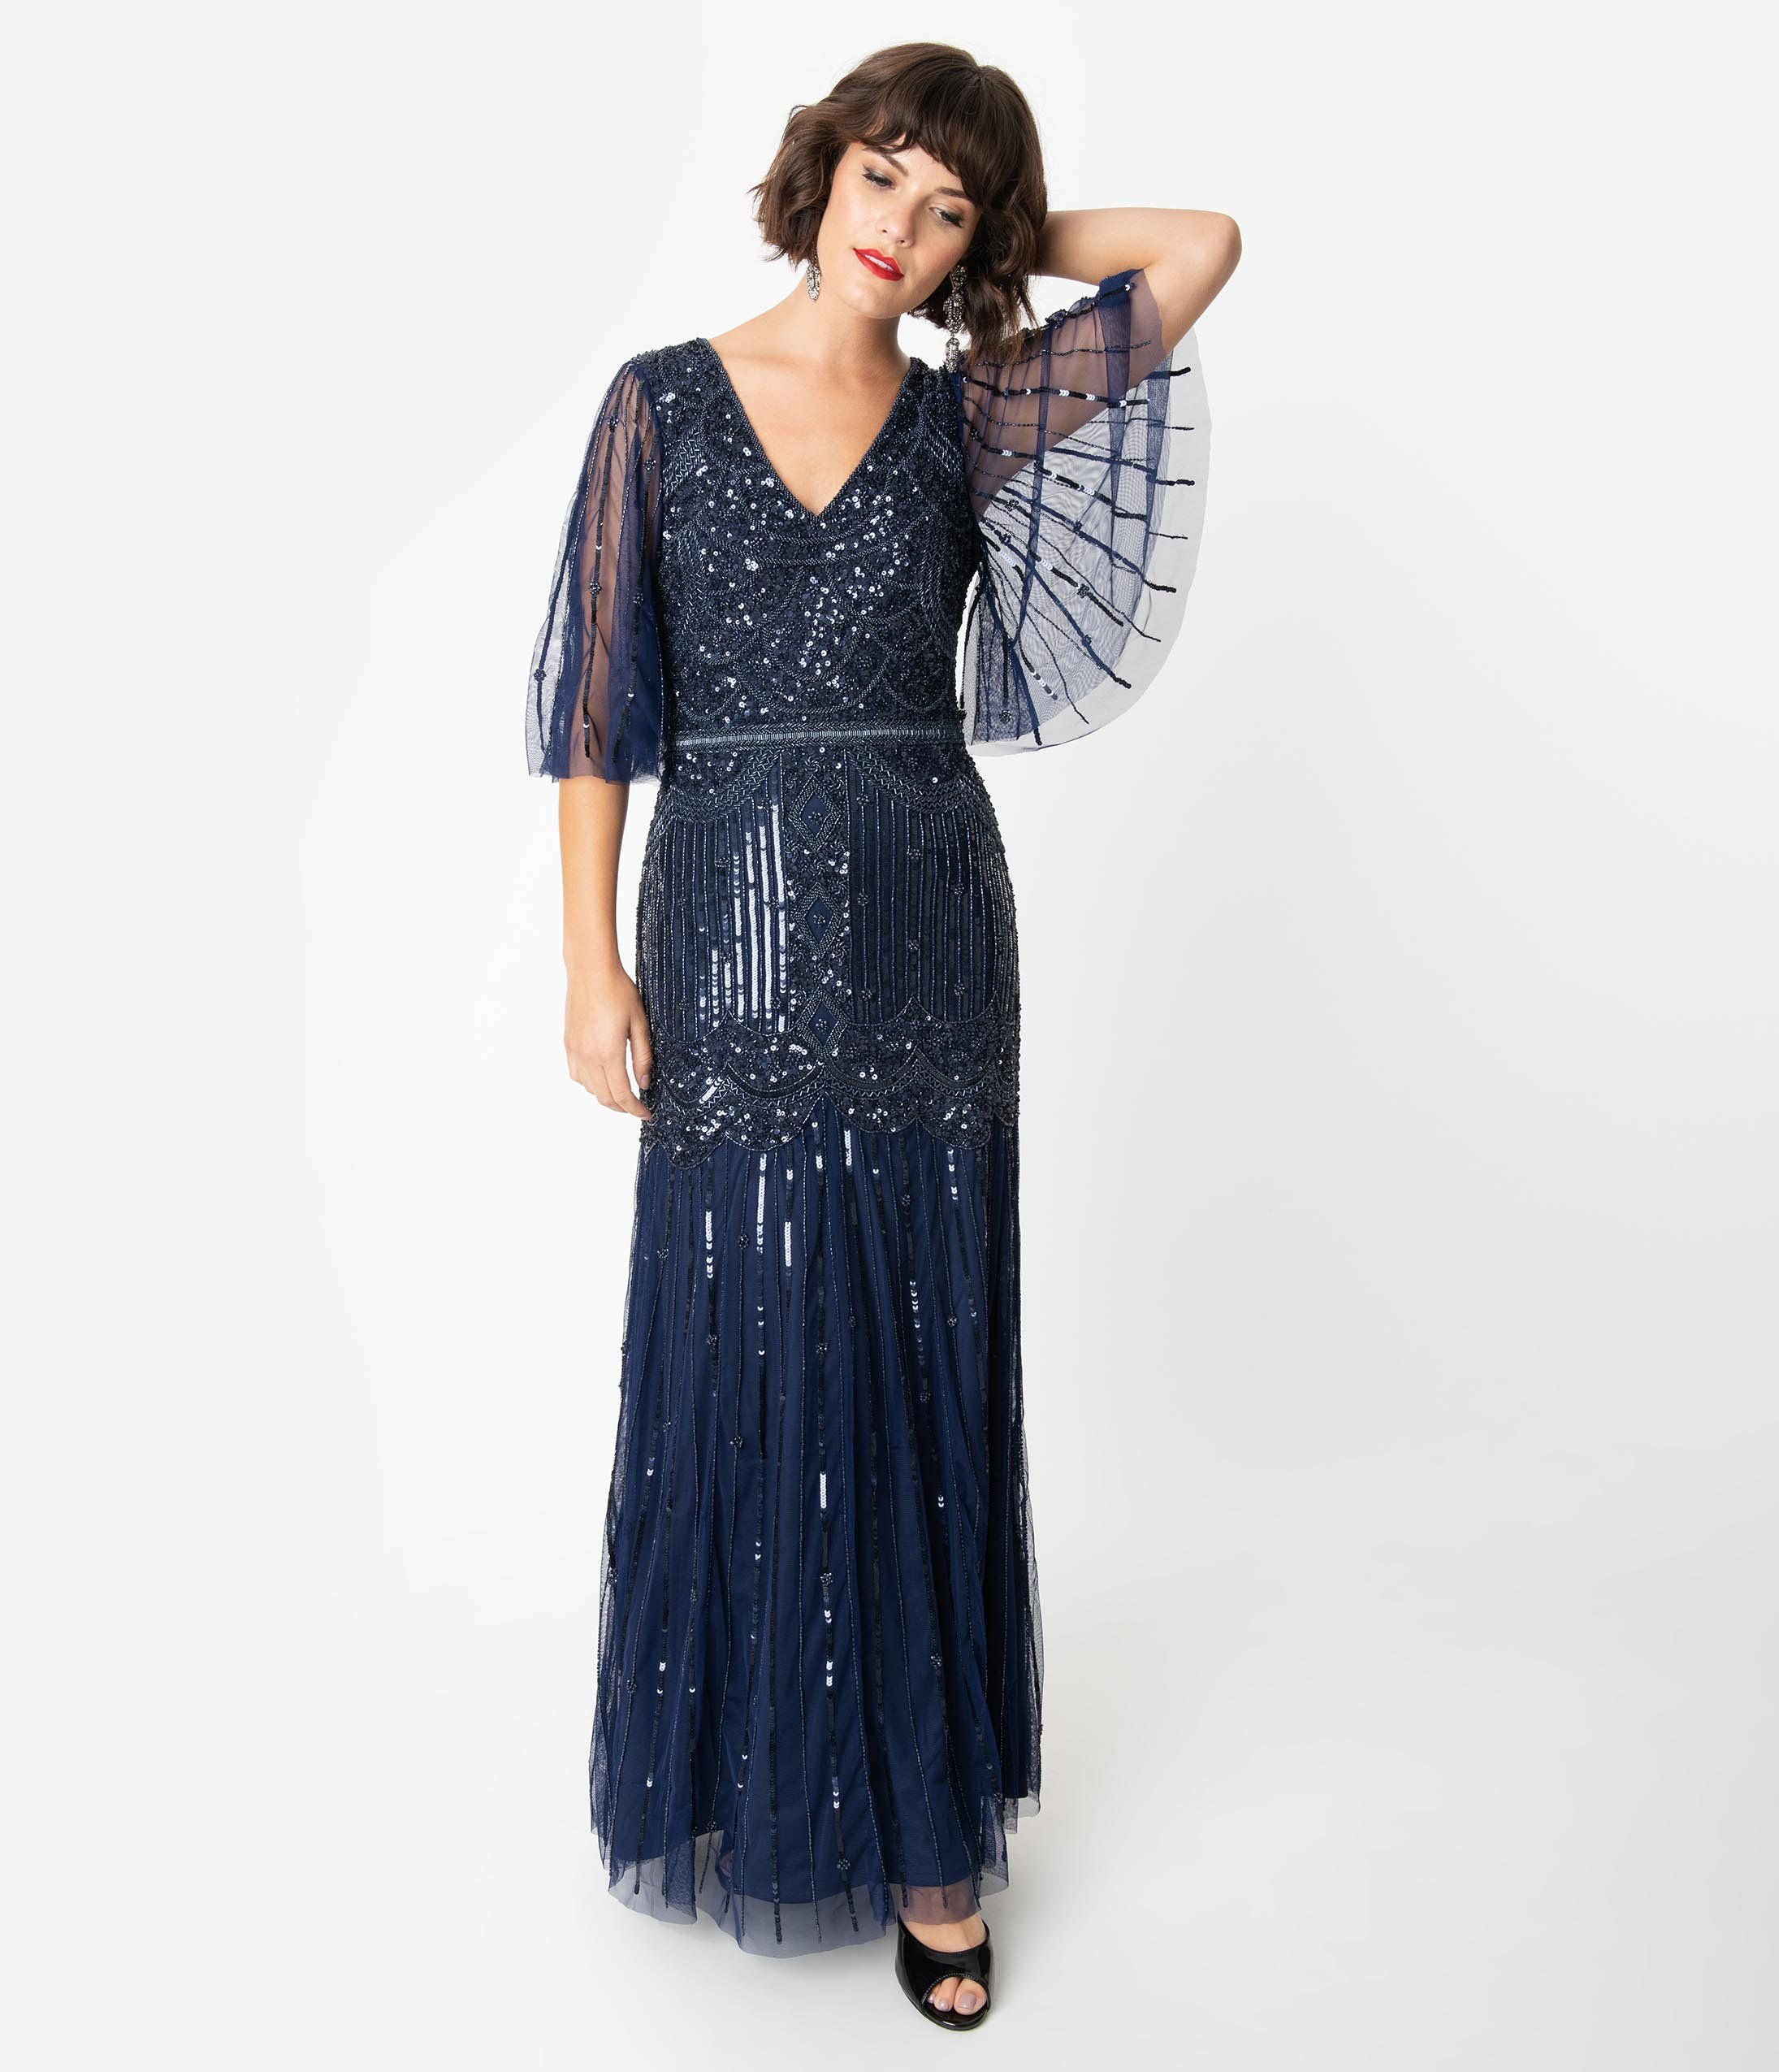 1920s Downton Abbey Inspired Clothing Long Flapper Dress Dresses Feather Dress [ 2550 x 2190 Pixel ]